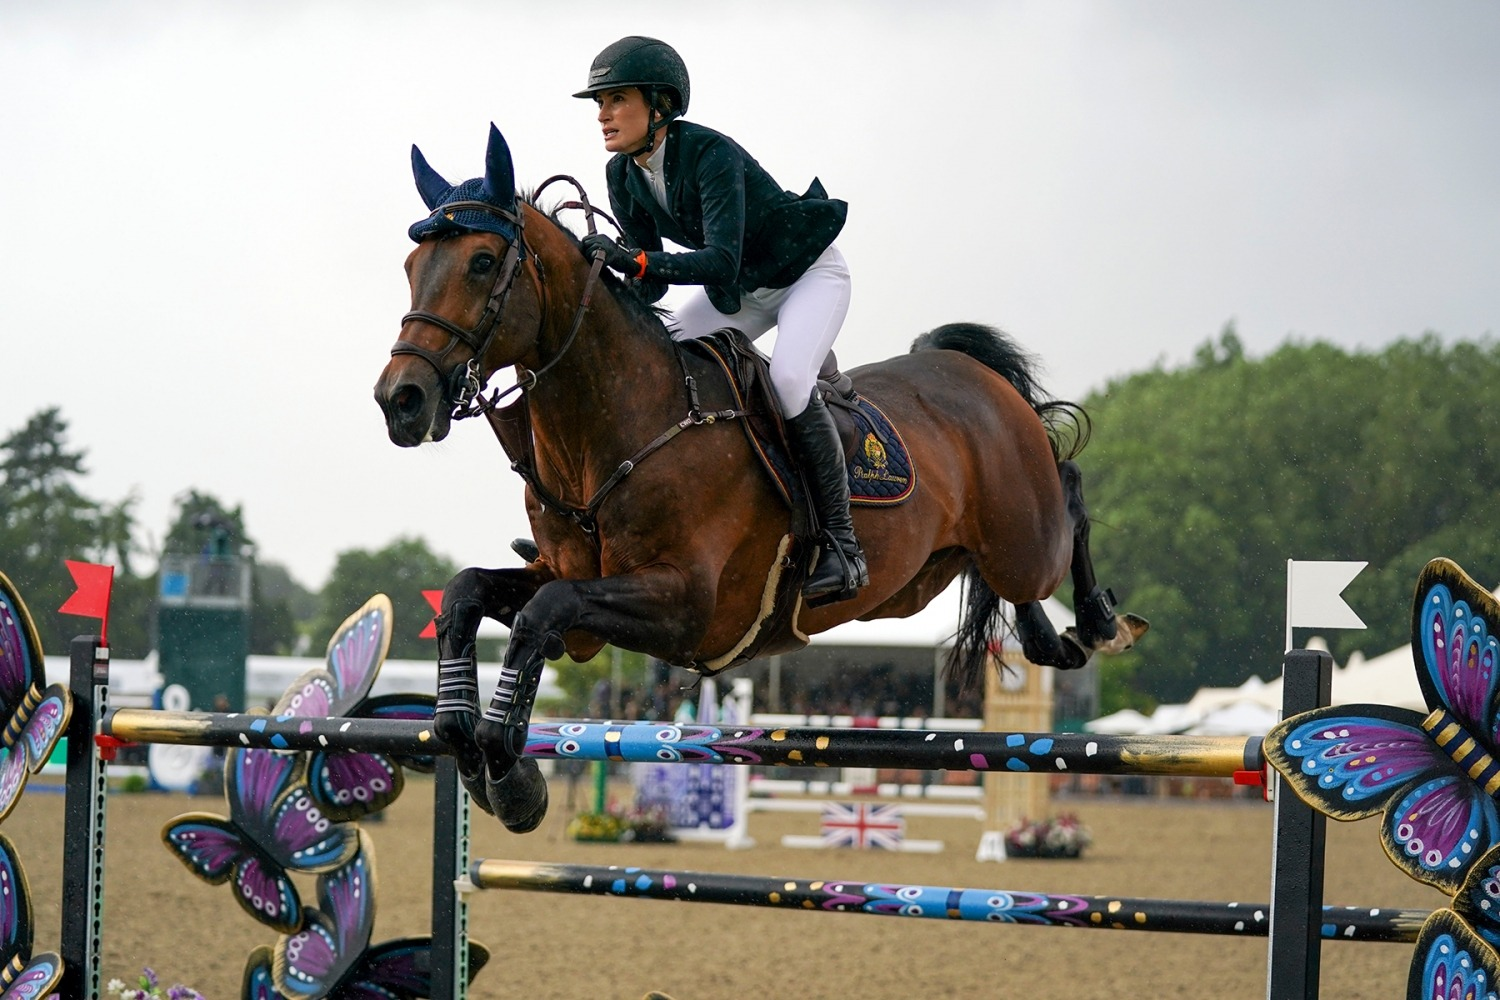 Royal Windsor Horse Show 2021. Jessica Springsteen riding Don Juan van de Donkhoeve competes in the Rolex Grand Prix at the Royal Windsor Horse Show, Windsor. Picture date: Sunday July 4, 2021. Photo credit should read: Steve Parsons/PA Wire URN:60747593 (Press Association via AP Images)